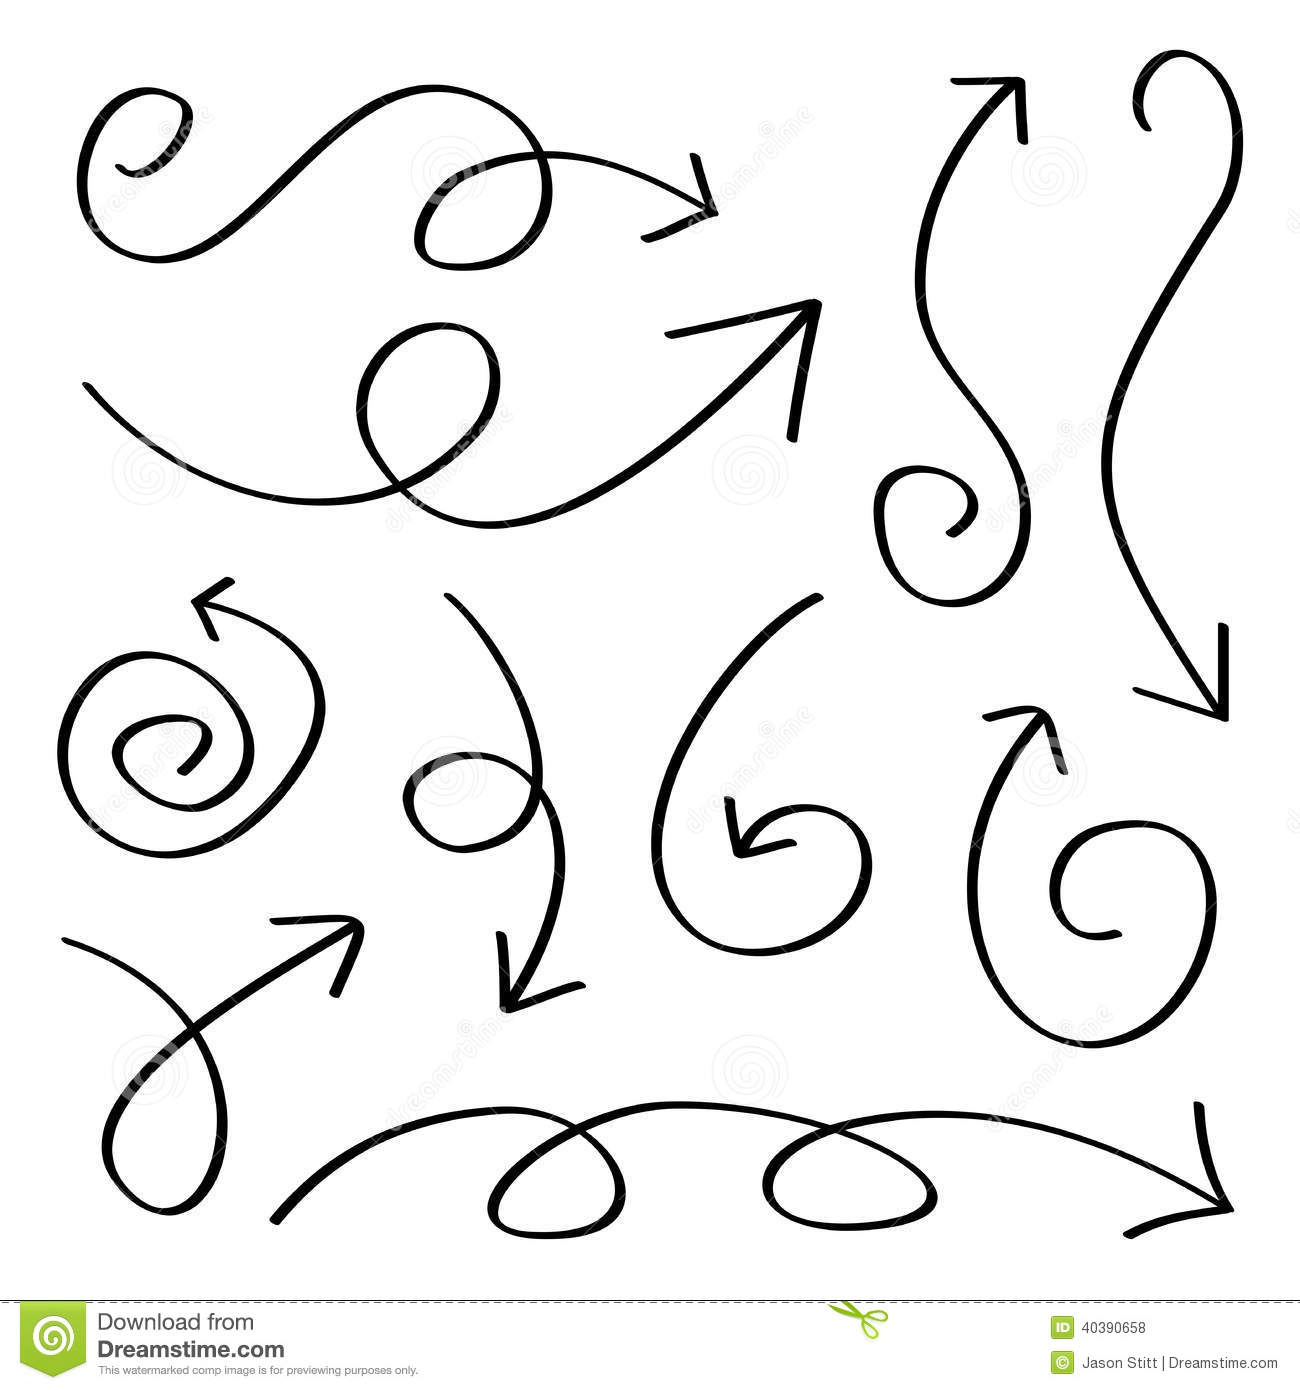 Drawing Vector Lines : Hand drawn arrows stock vector illustration of planning